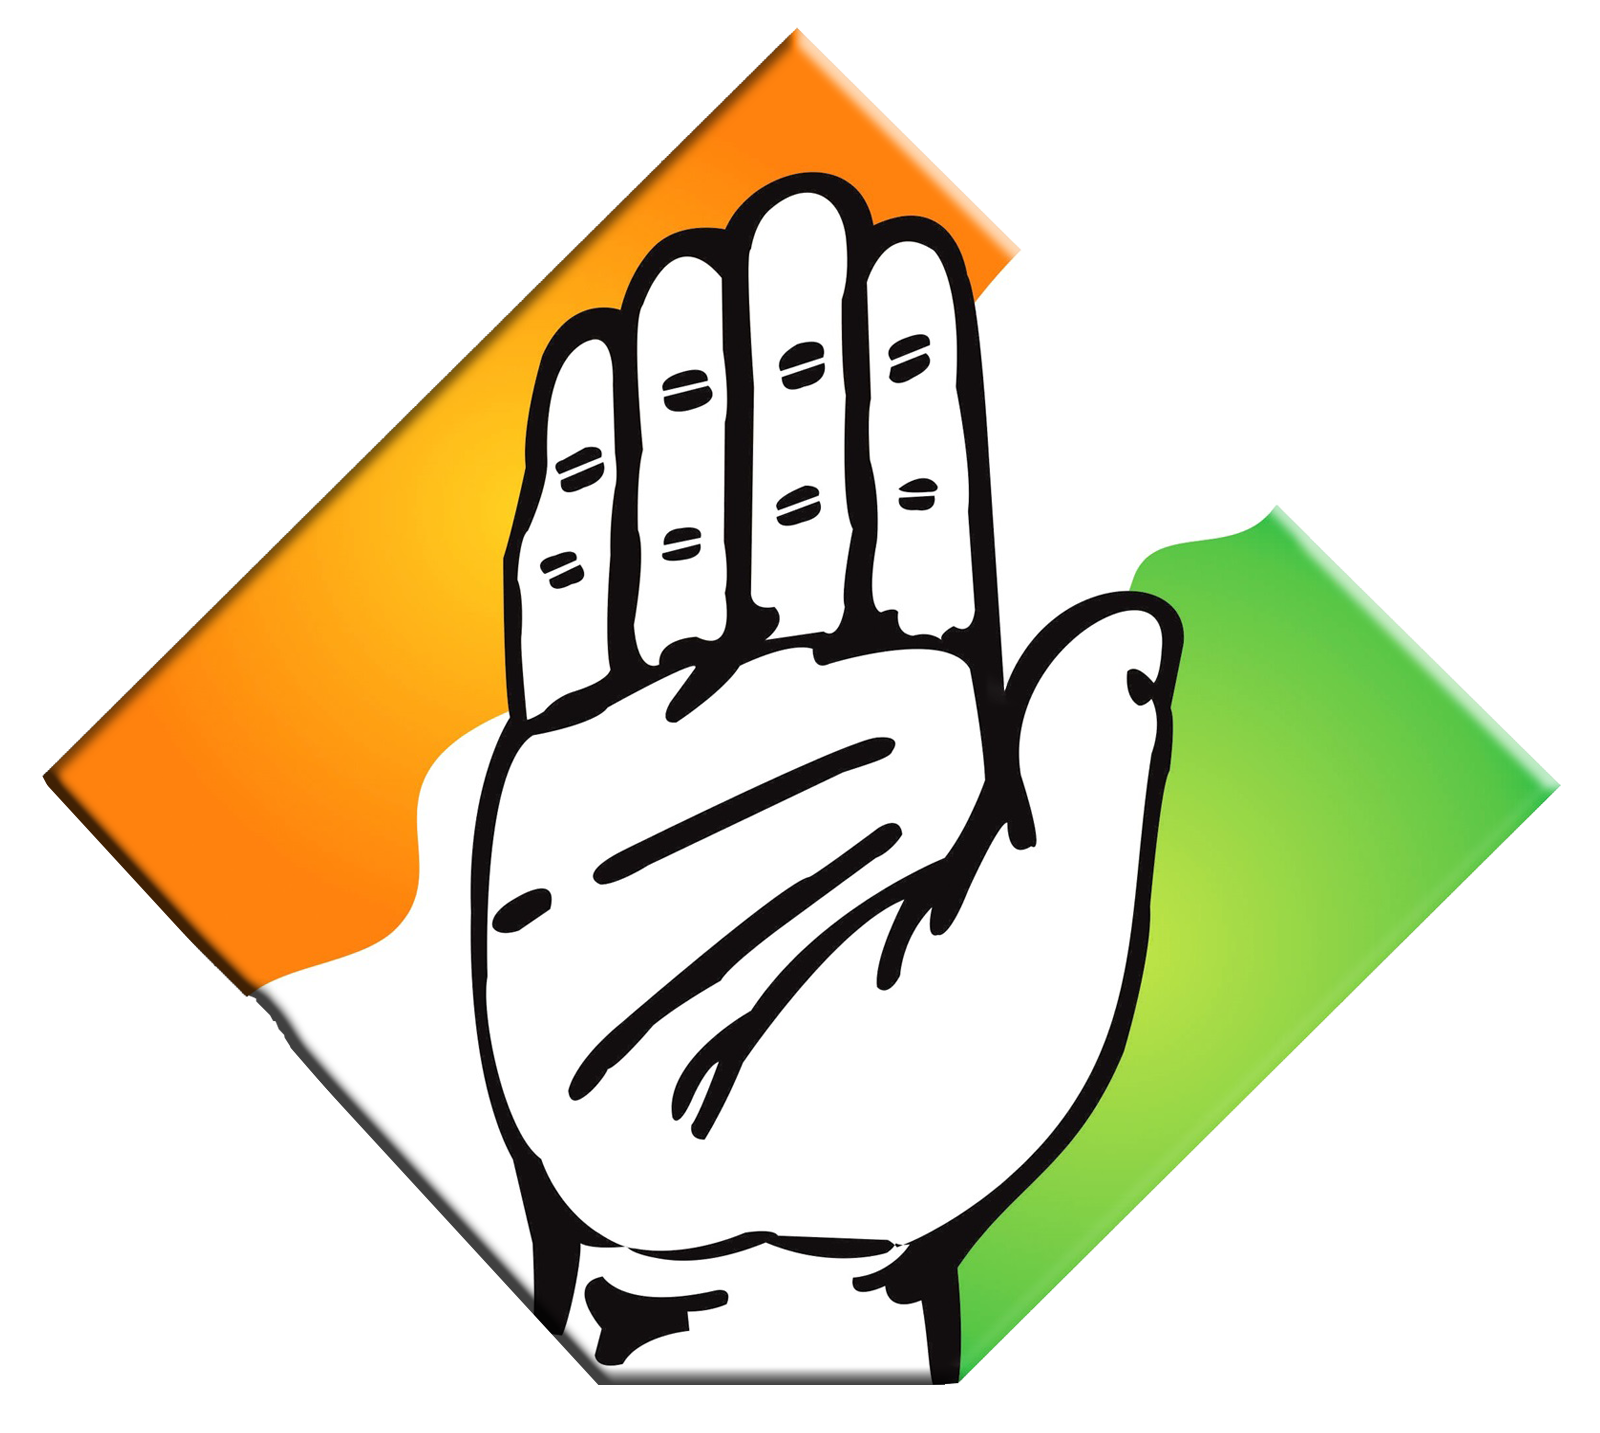 Congress Logo PNG Free Download.